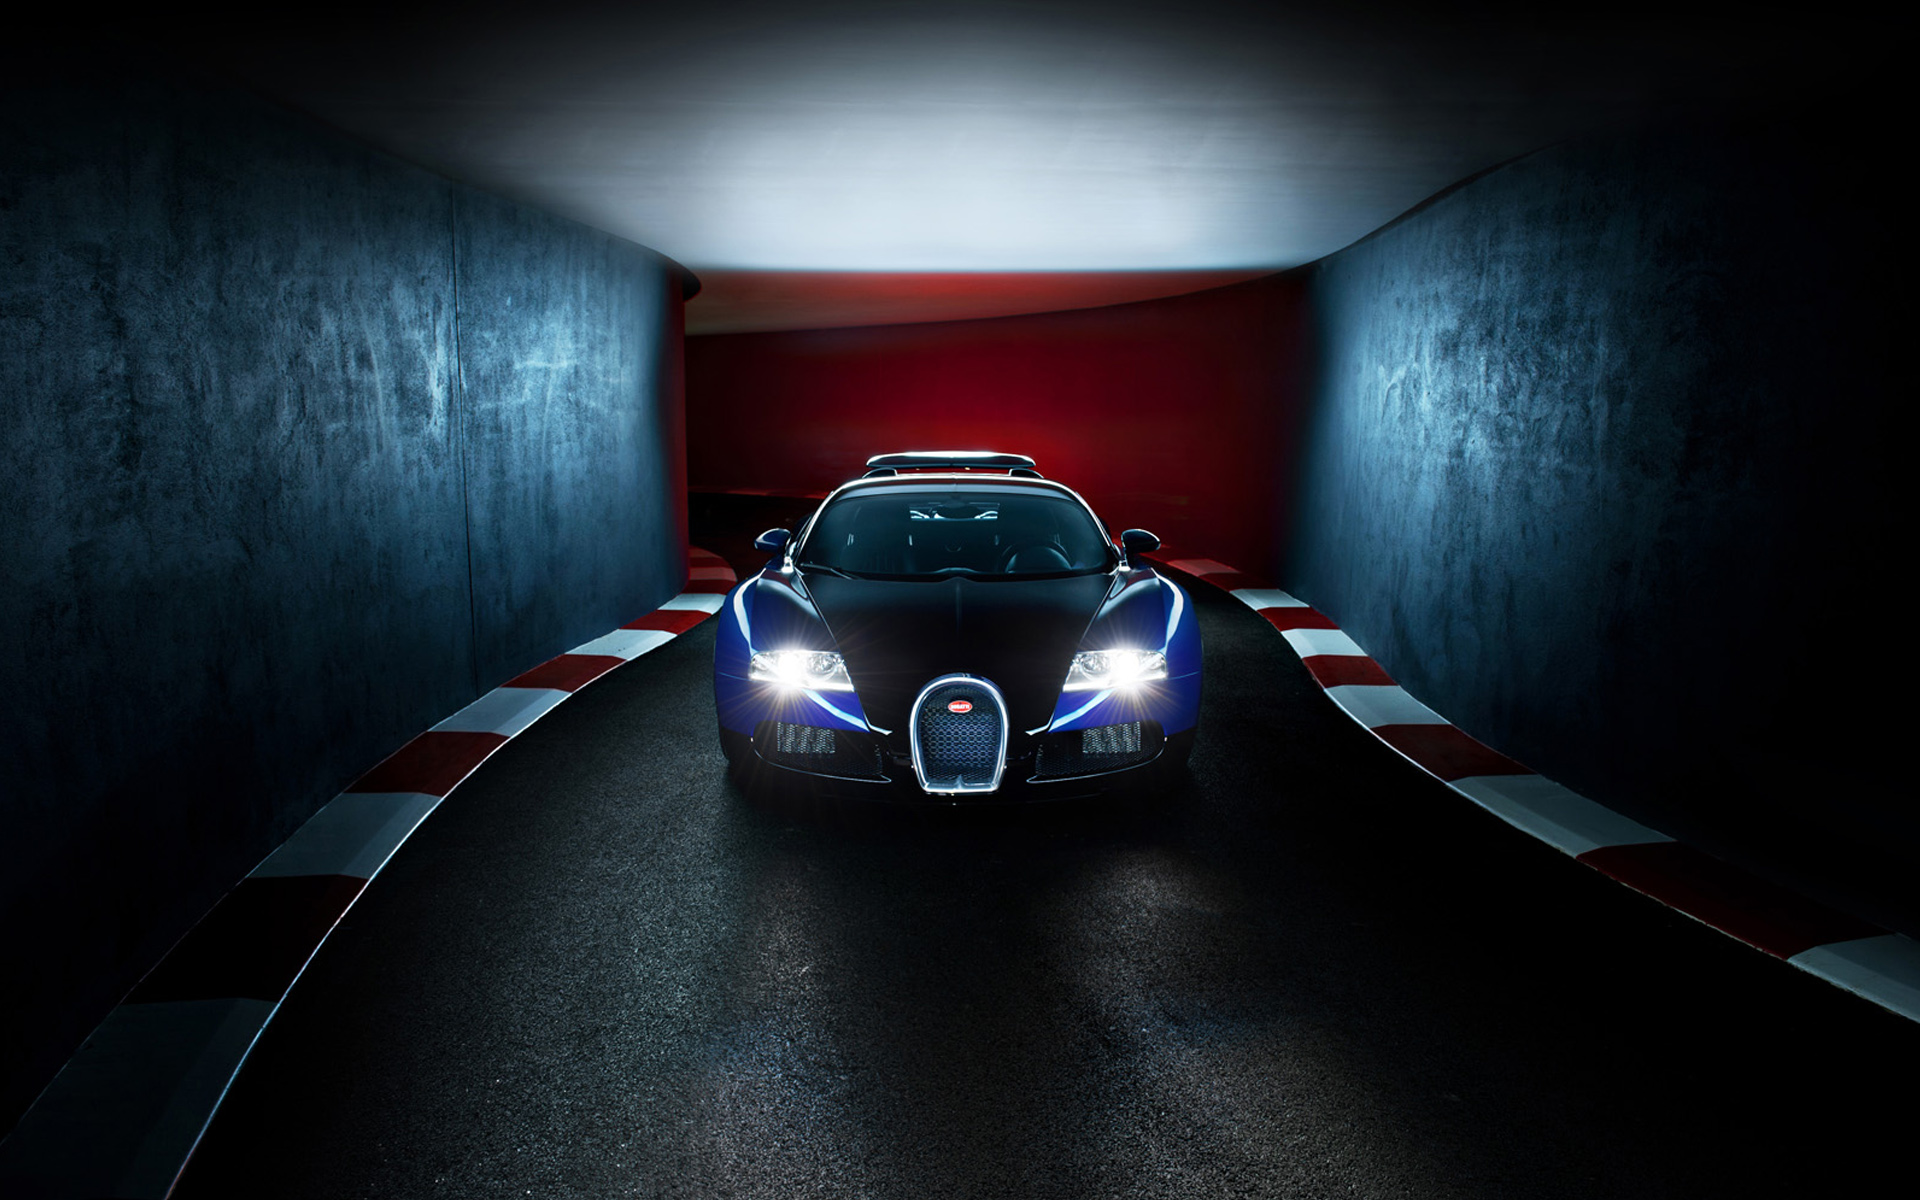 Bugatti Veyron Wallpapers HD Wallpapers 1920x1200